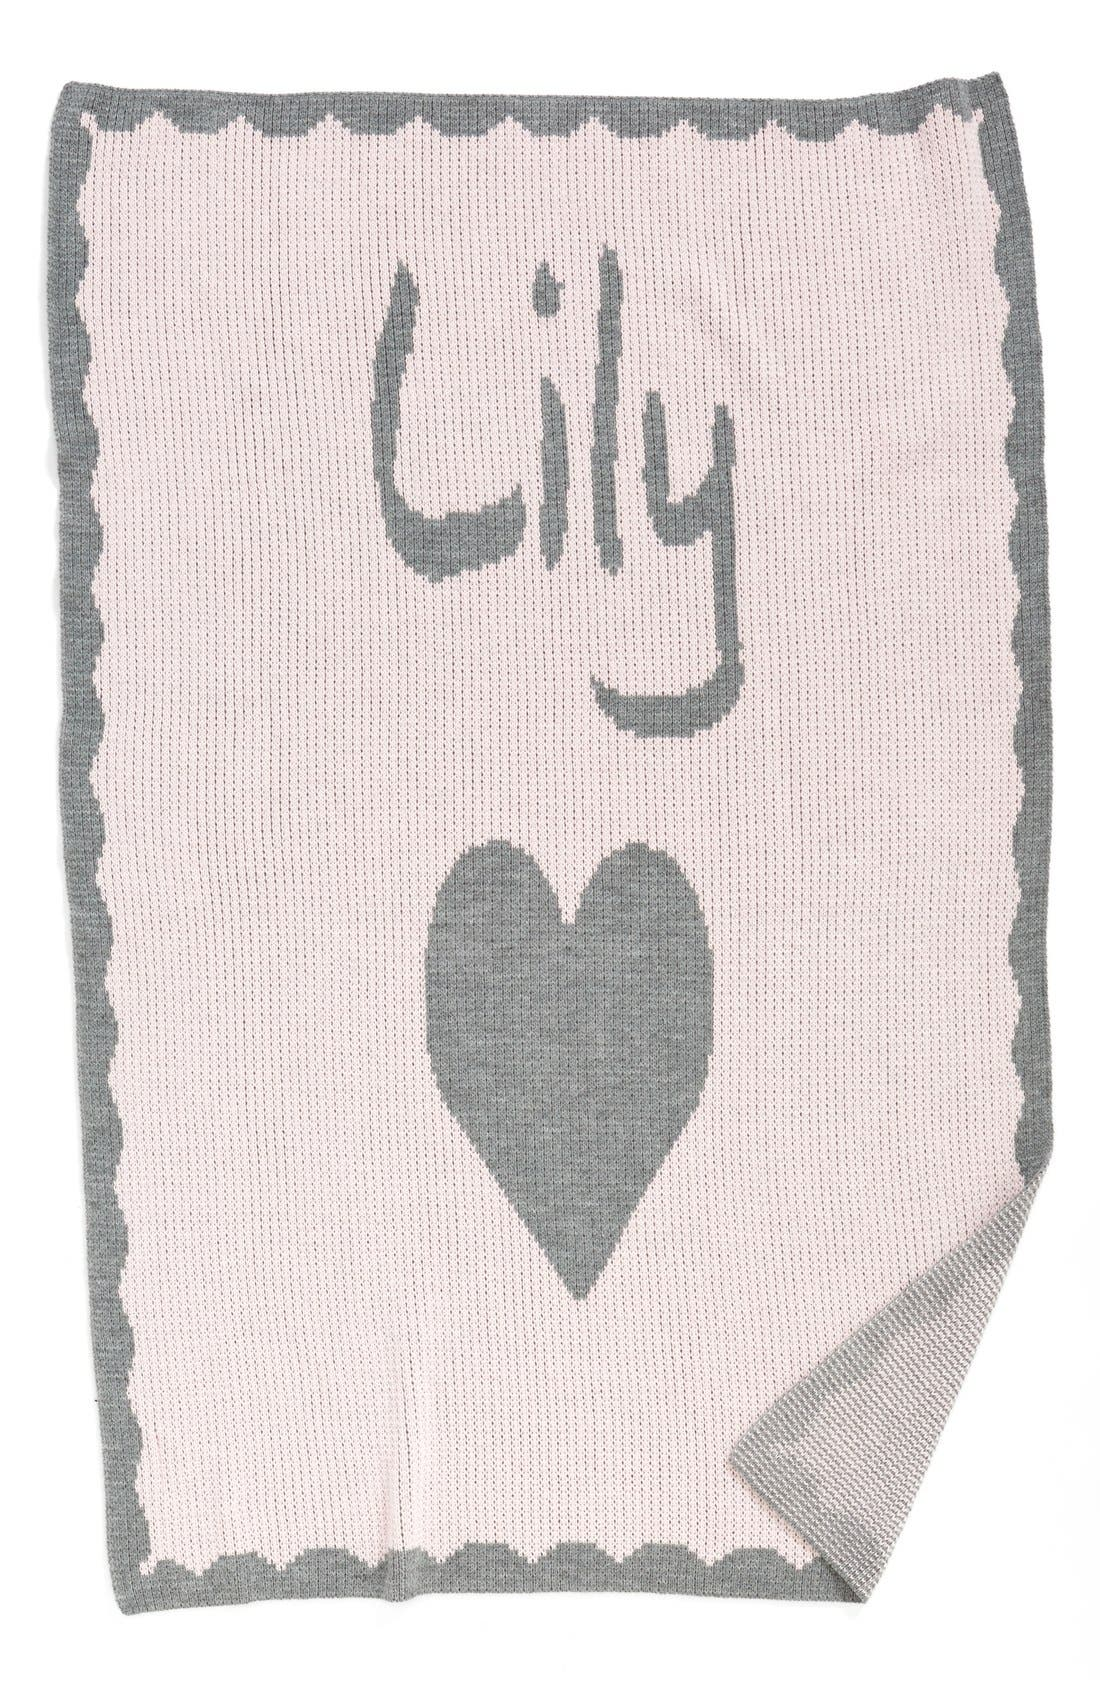 'Heart' Personalized Crib Blanket,                         Main,                         color, PINK